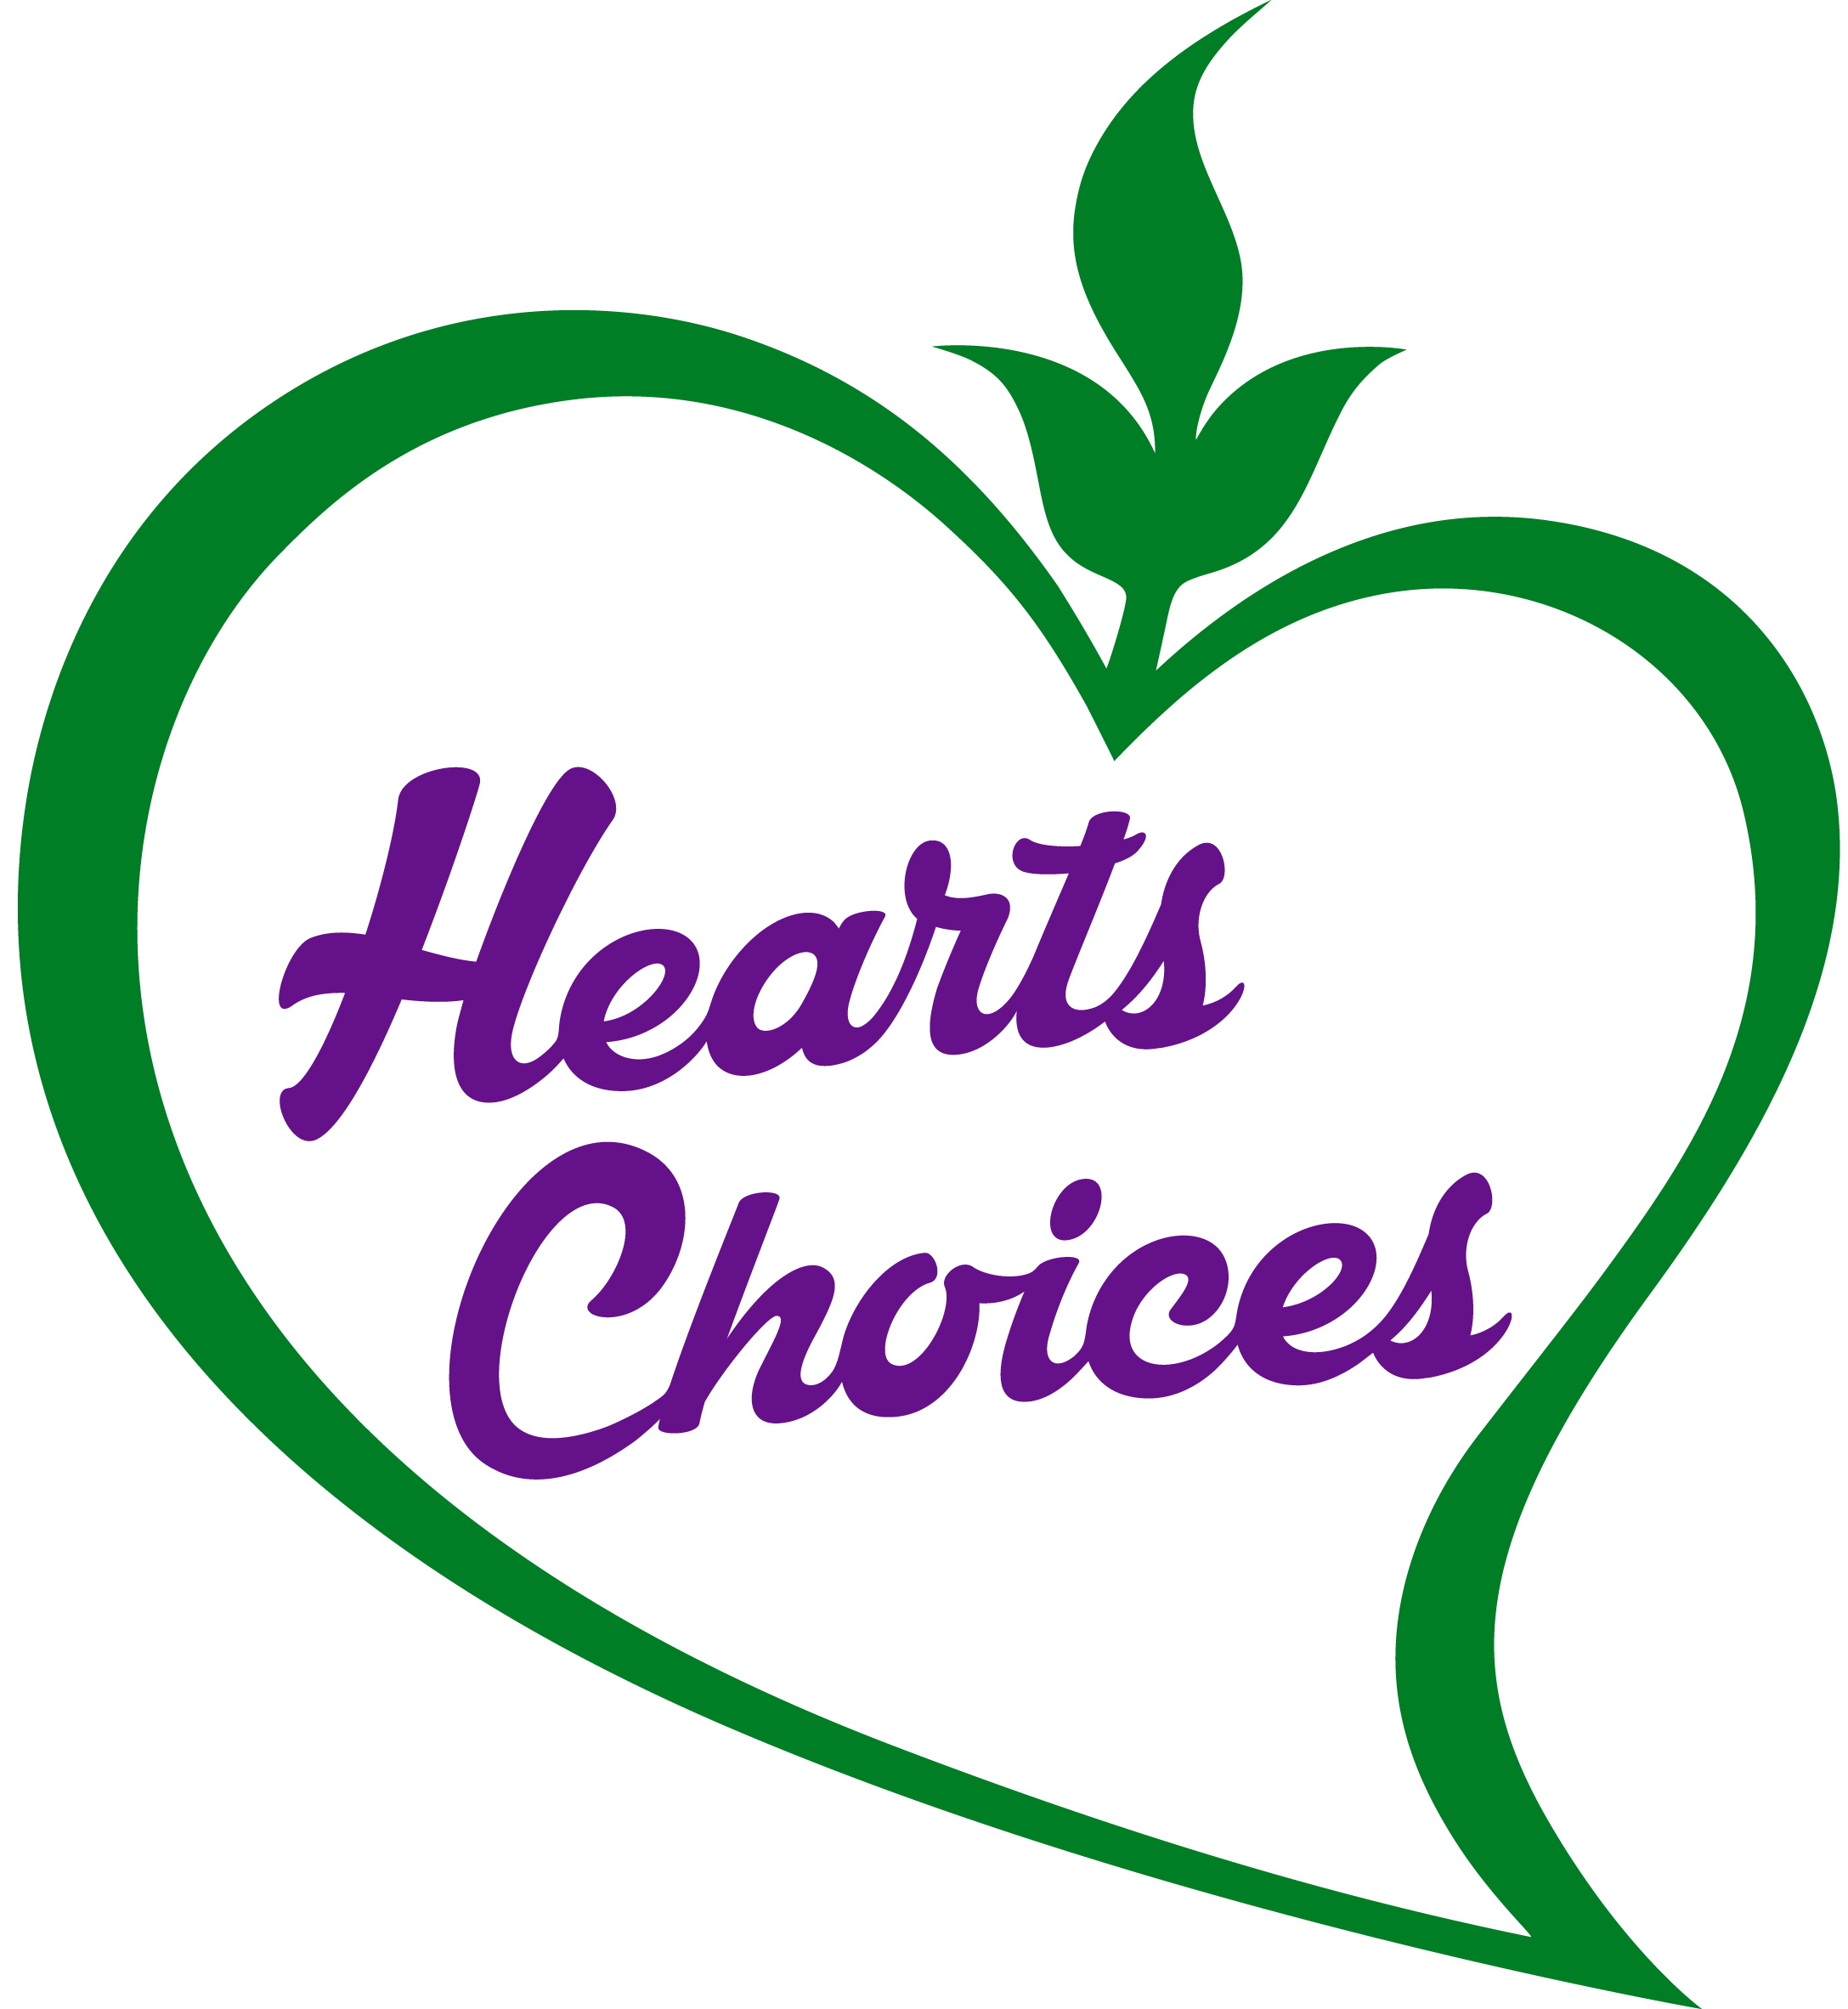 Hearts Choices